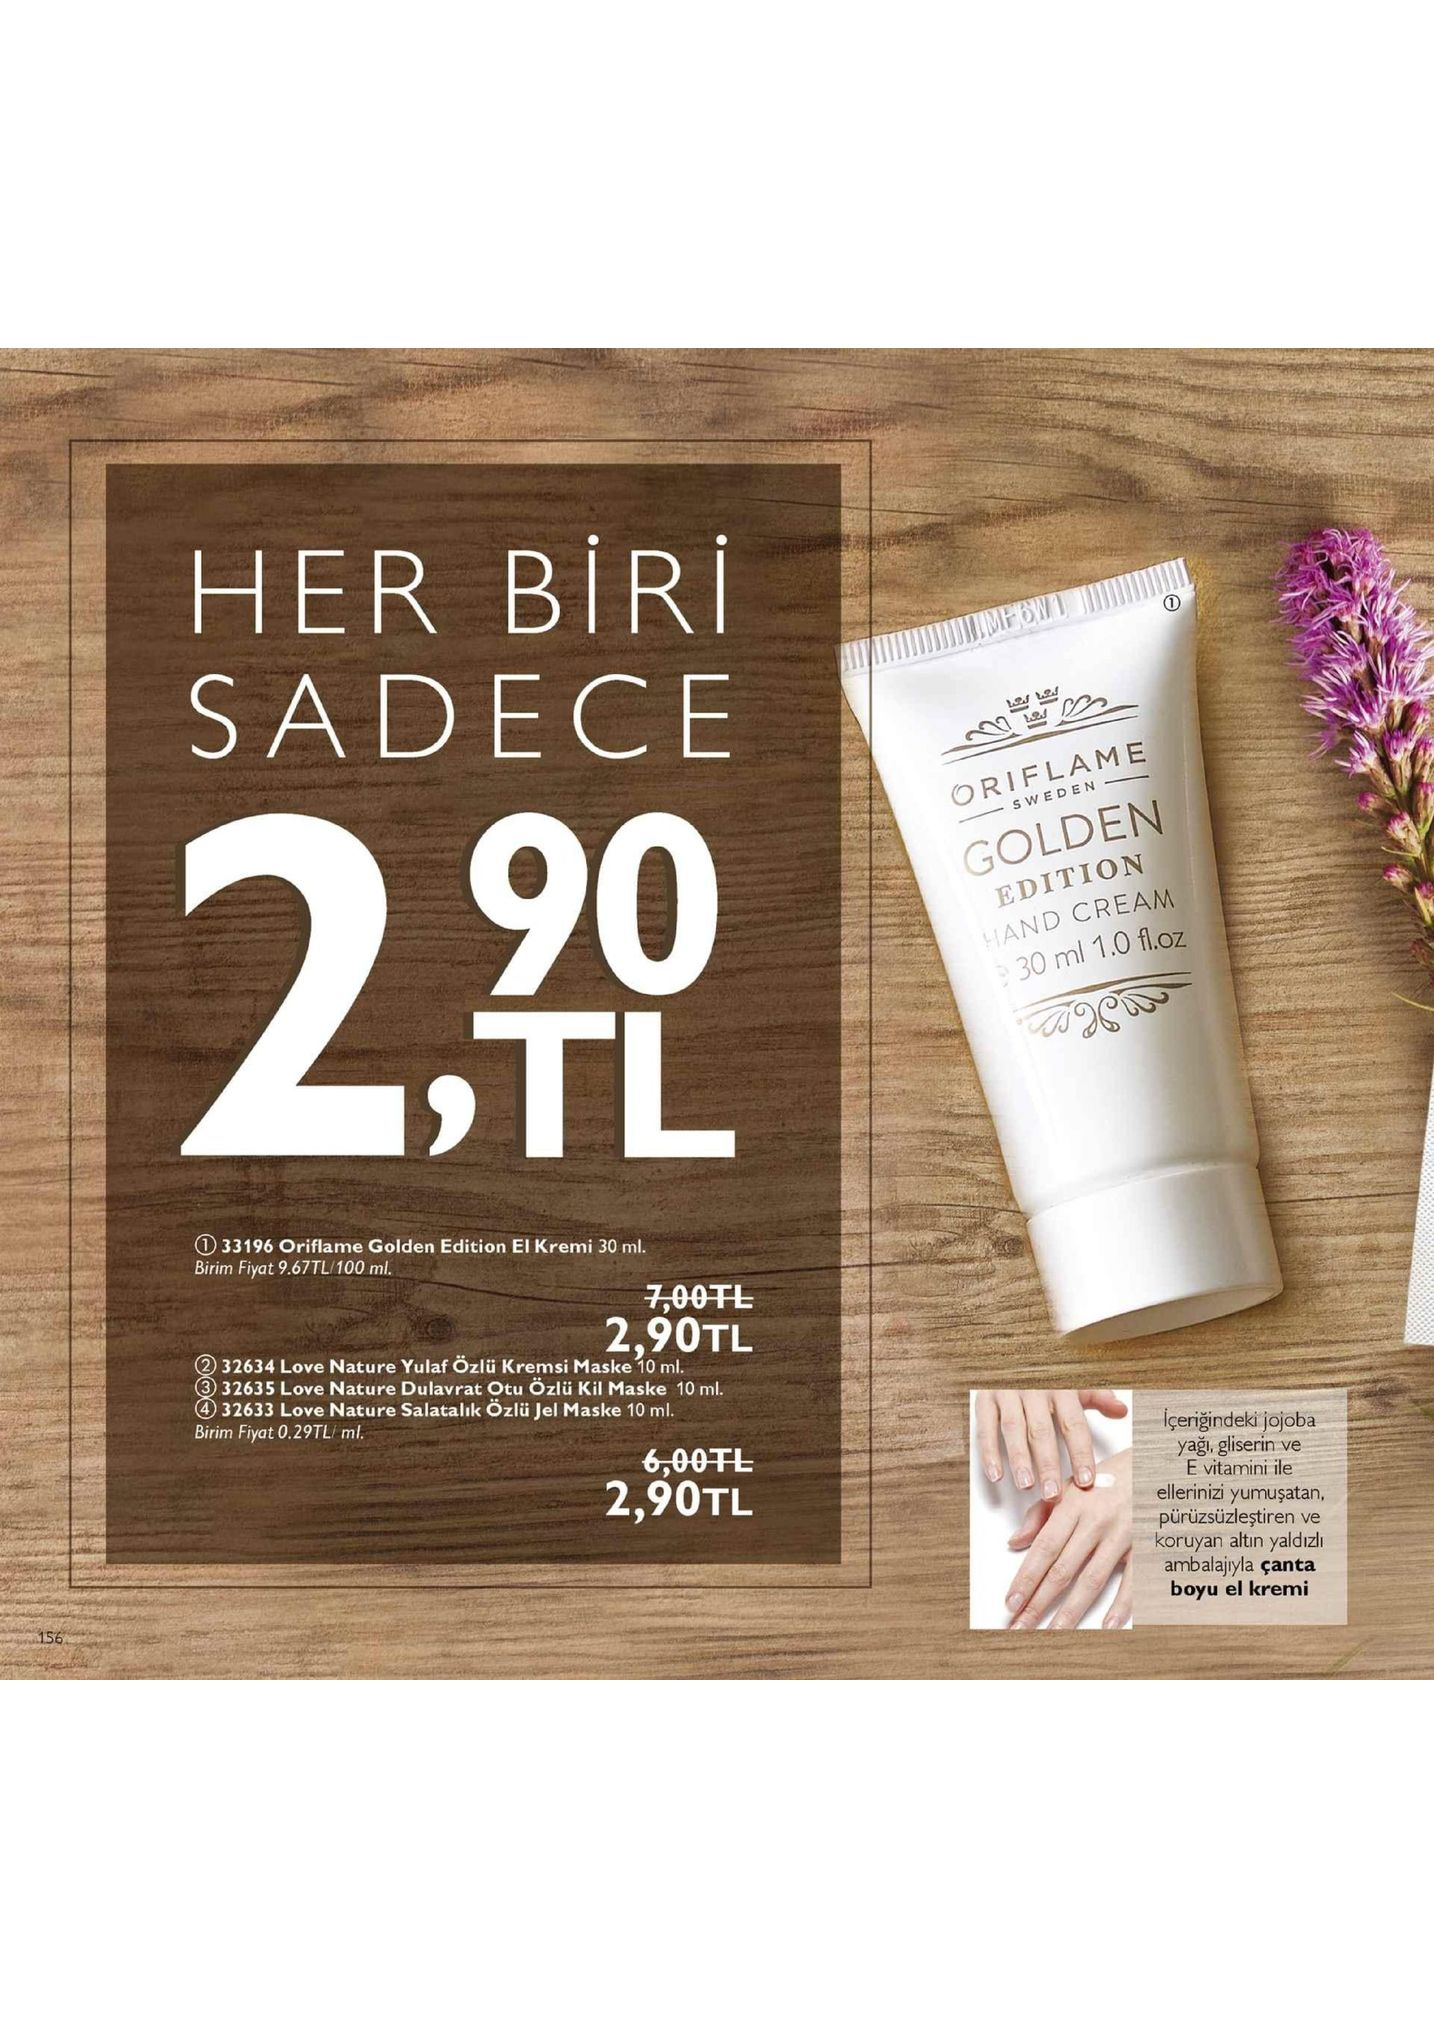 her biri sadece oriflame 90 s weden golden edition and cream 30 ml 1.0 floz tl ① 33196 oriflame golden edition el kremi 30 ml. birim fiyat 9.67tl/100 ml. 7,00fl 2,90tl 32634 love nature yulaf özlü kremsi maske 10 ml. 3) 32635 love nature dulavrat otu ozlü kil maske 10 ml 4 32633 love nature salatalık özlü jel maske 10 ml. birim fiyat 0.29tl ml. içeriğindeki jojoba yaği, gliserin ve e vitamini ile ellerinizi yumuşatan, pürüzsüzleştiren ve koruyan altin yaldızlı ambalajiyla çanta boyu el kremi 6,00干し 2,90tl